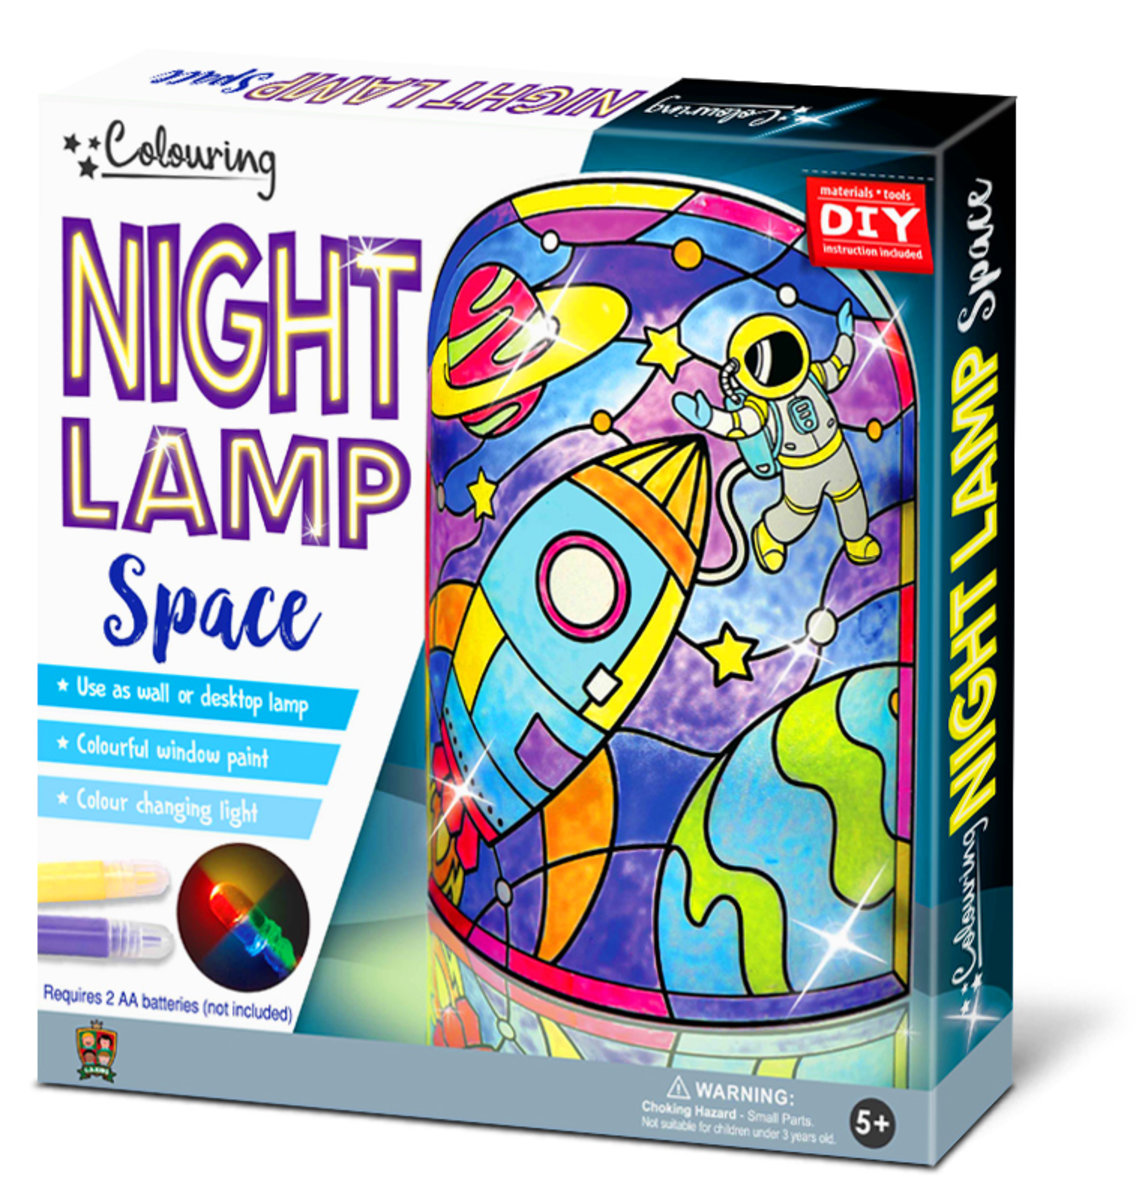 C S Kids Diy Magic World Space Night Lamp Kit For Kids Stained Glass Color Changing Led Bedroom Light Hktvmall Online Shopping